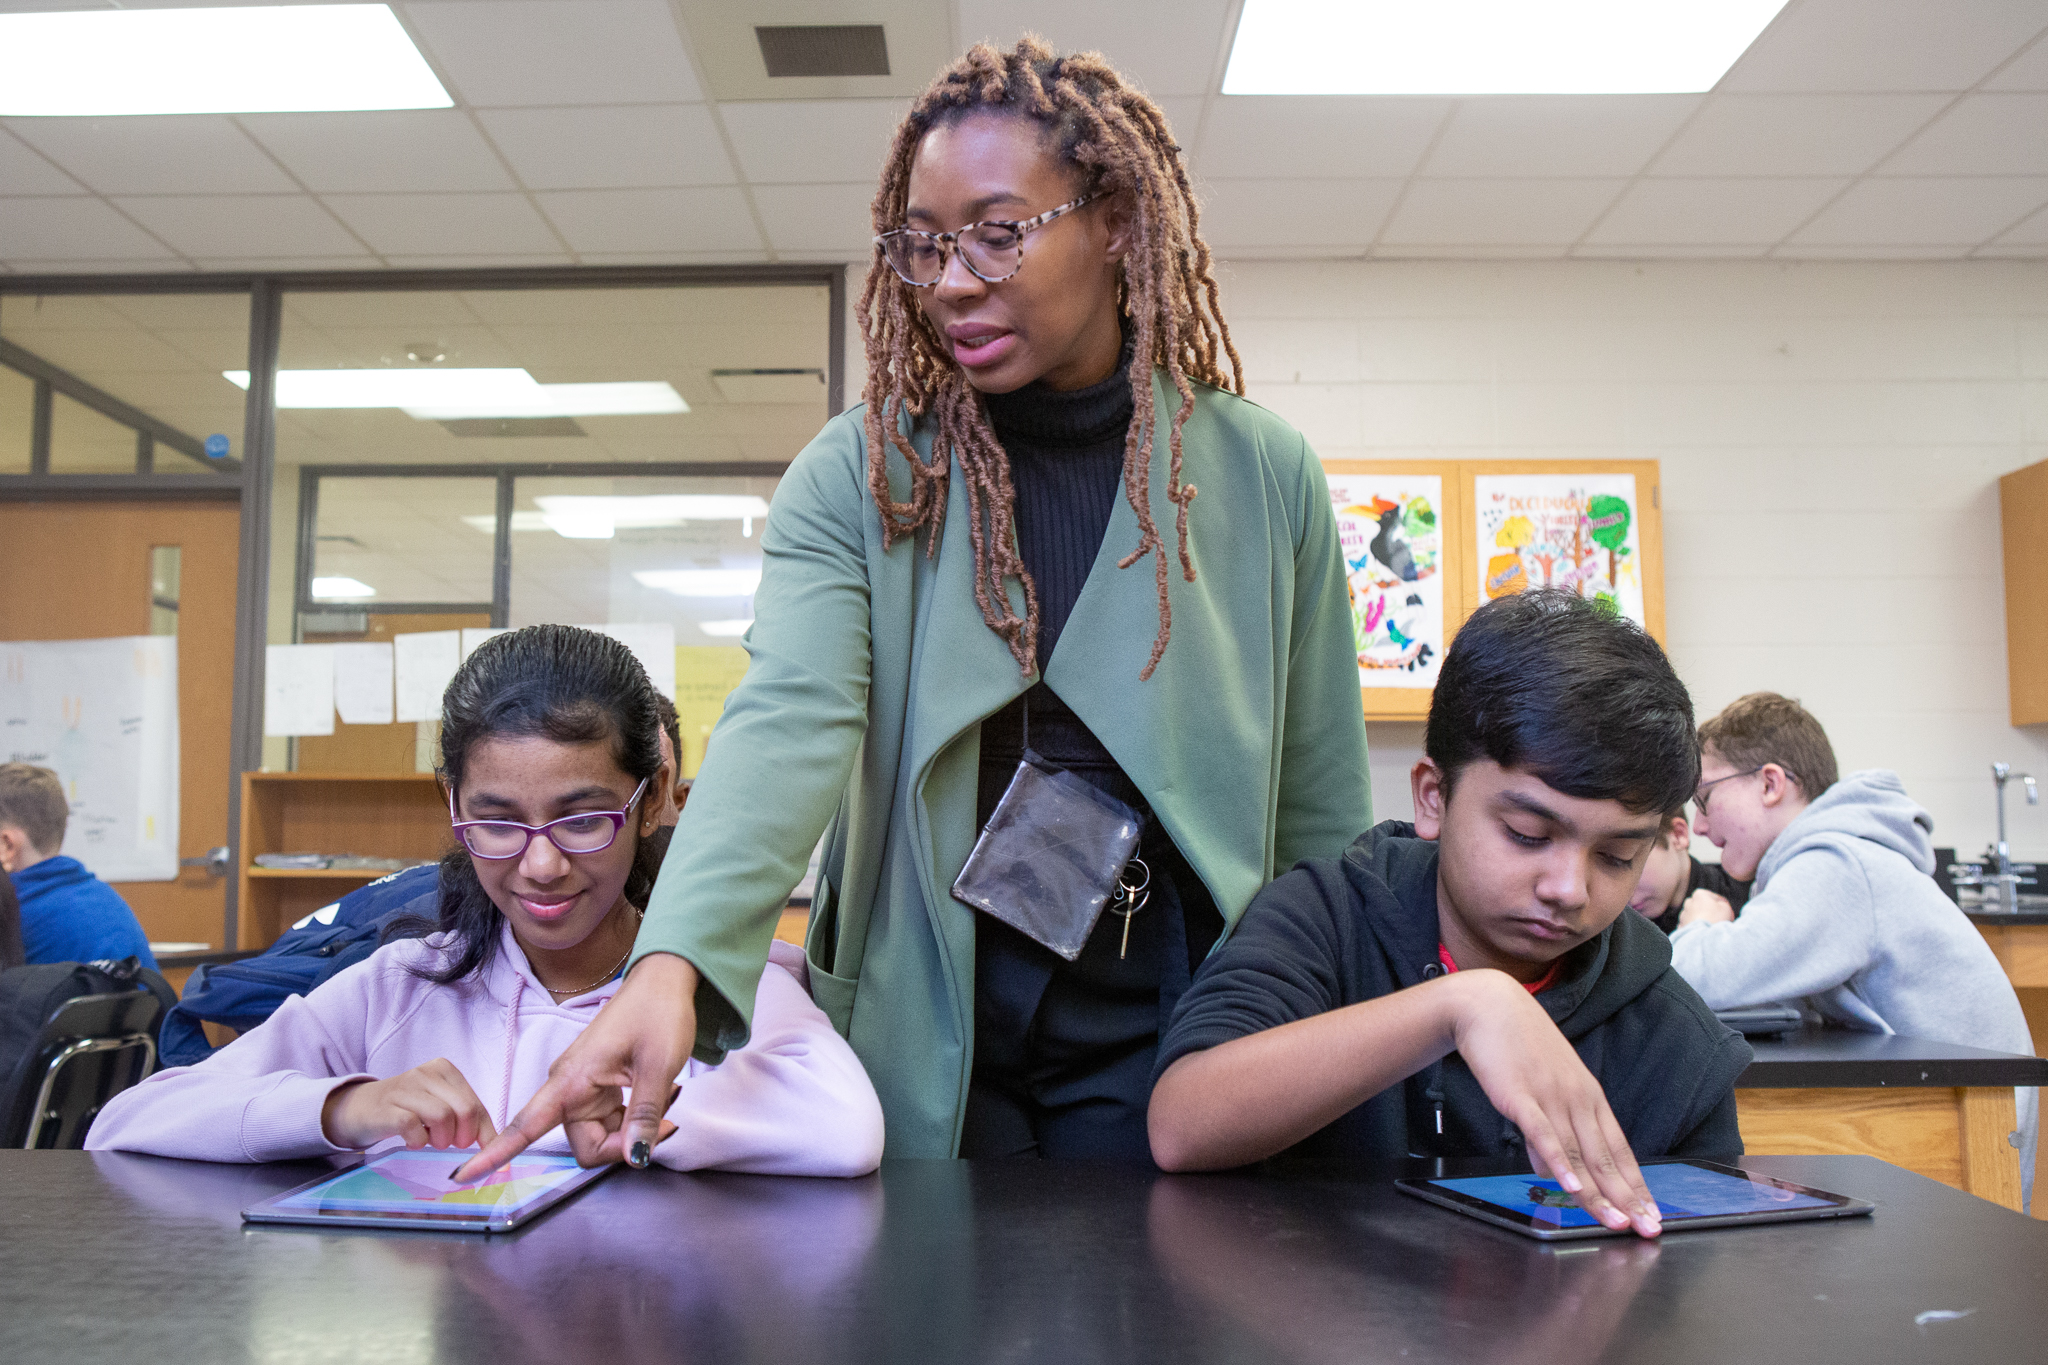 A teacher pointing out an image on a student's iPad